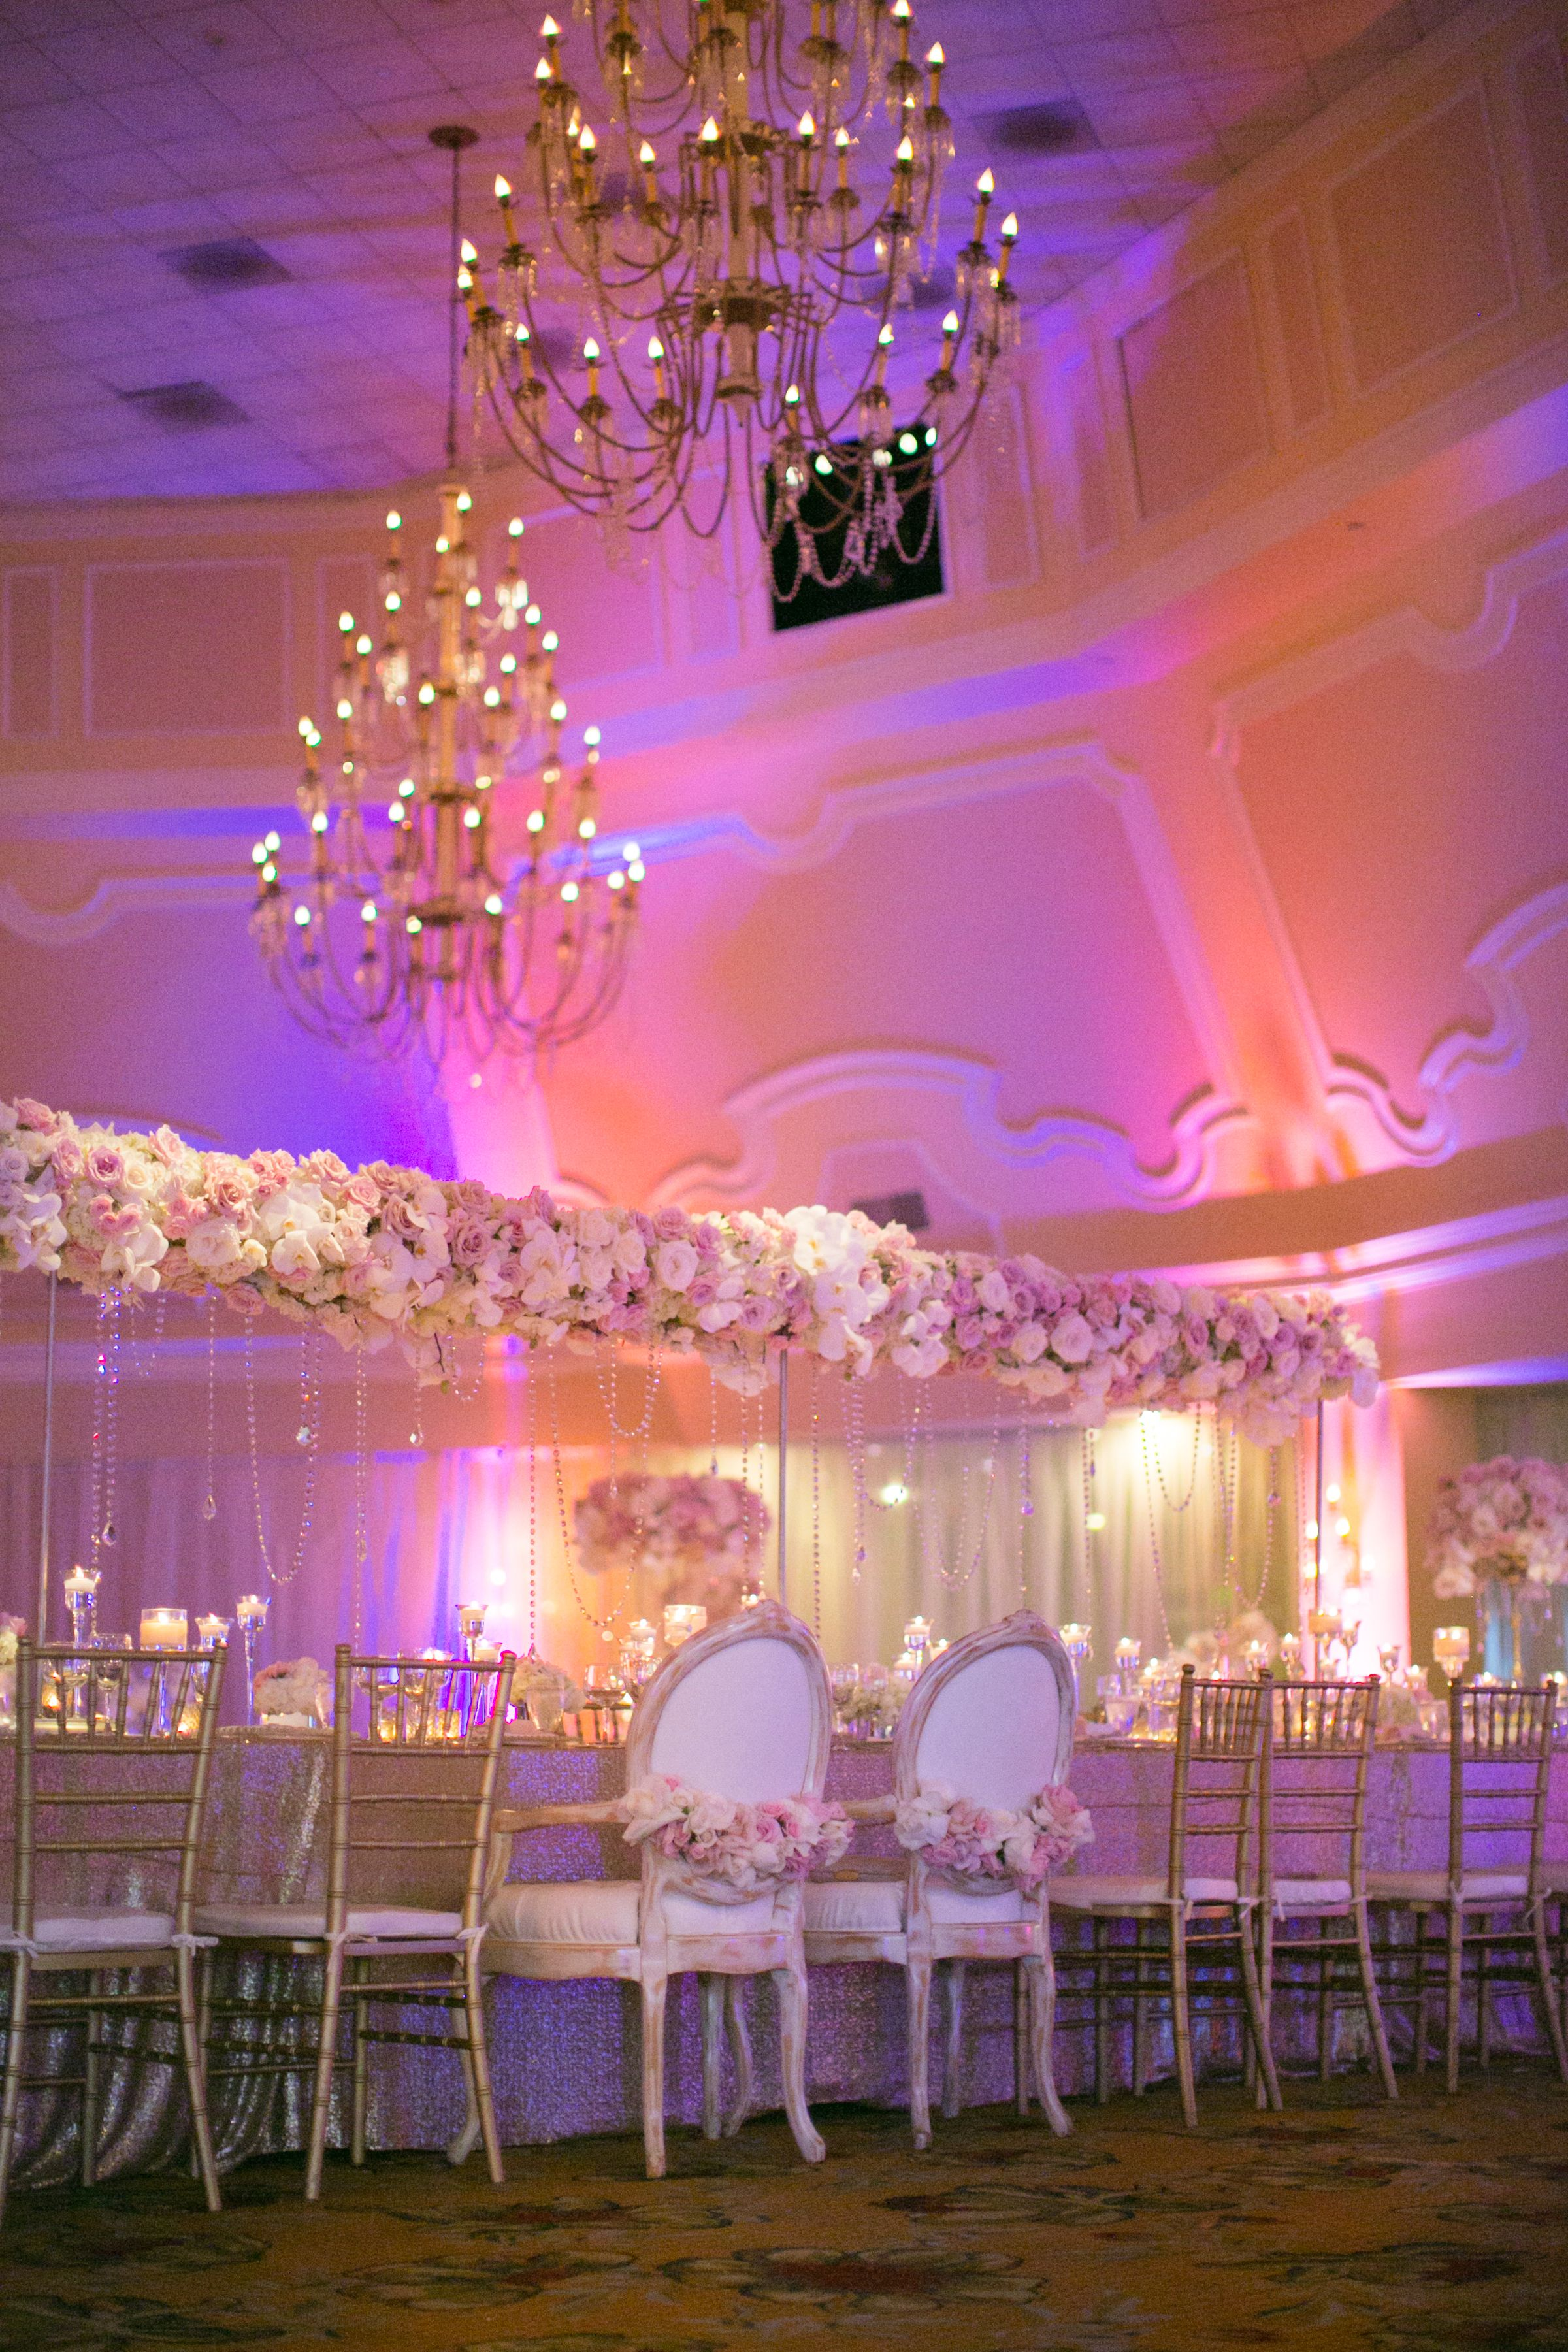 wedding reception lighting ideas. Wedding Planning Tip Of The Day: Pick Right Venue To Save Cost - MODwedding Reception Lighting Ideas